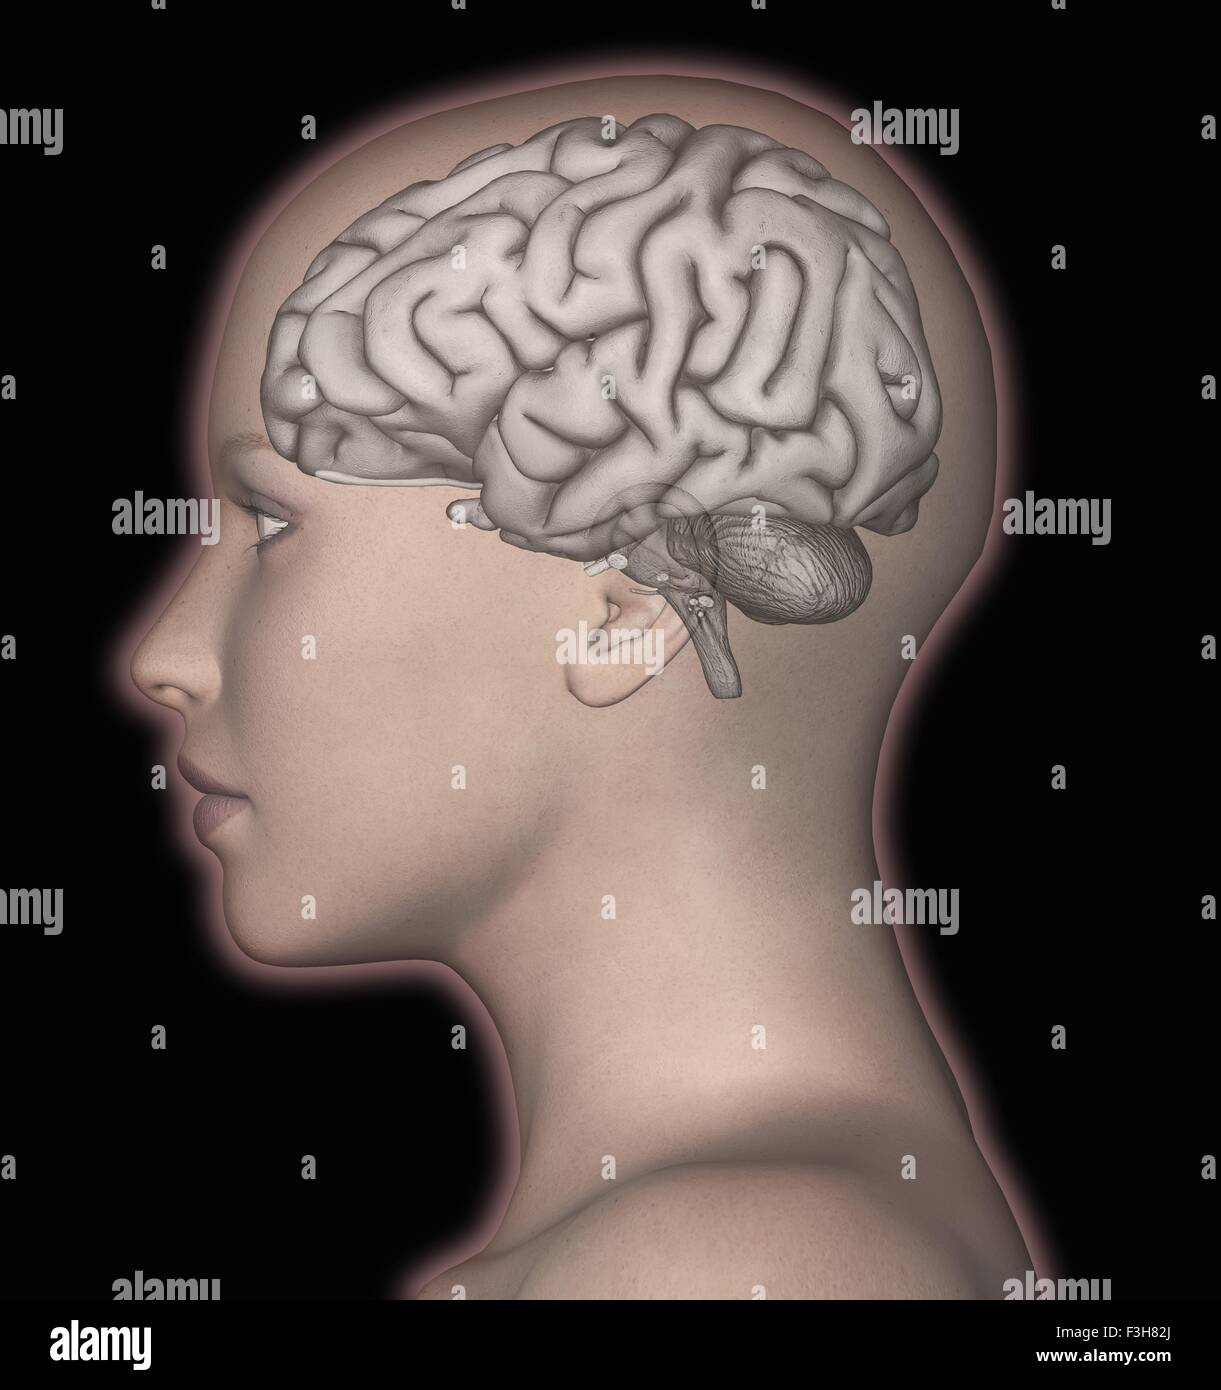 3D computer rendering of the human brain superimposed over the head of a woman - Stock Image